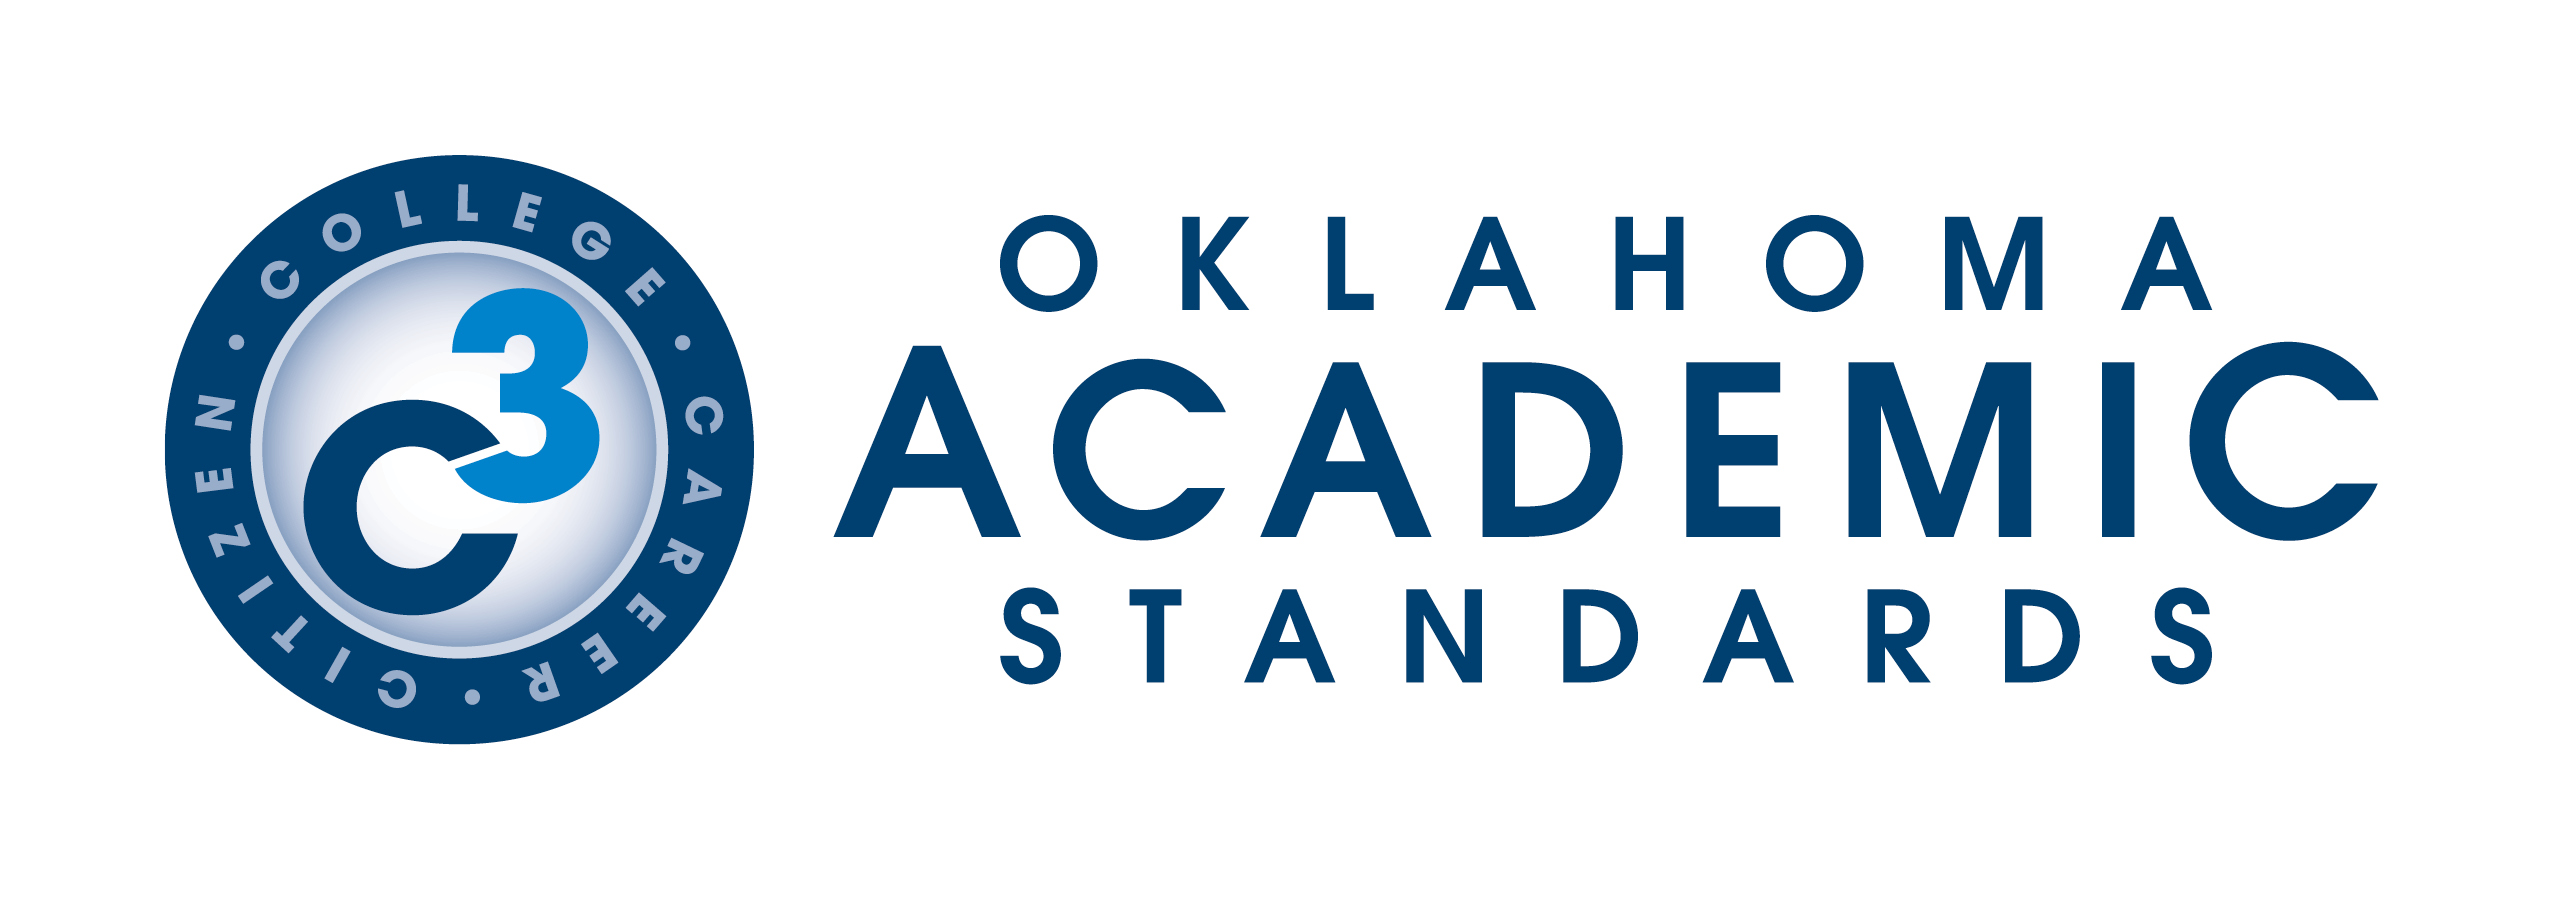 KINDERGARTEN ENGLISH LANGUAGE ARTS OKLAHOMA